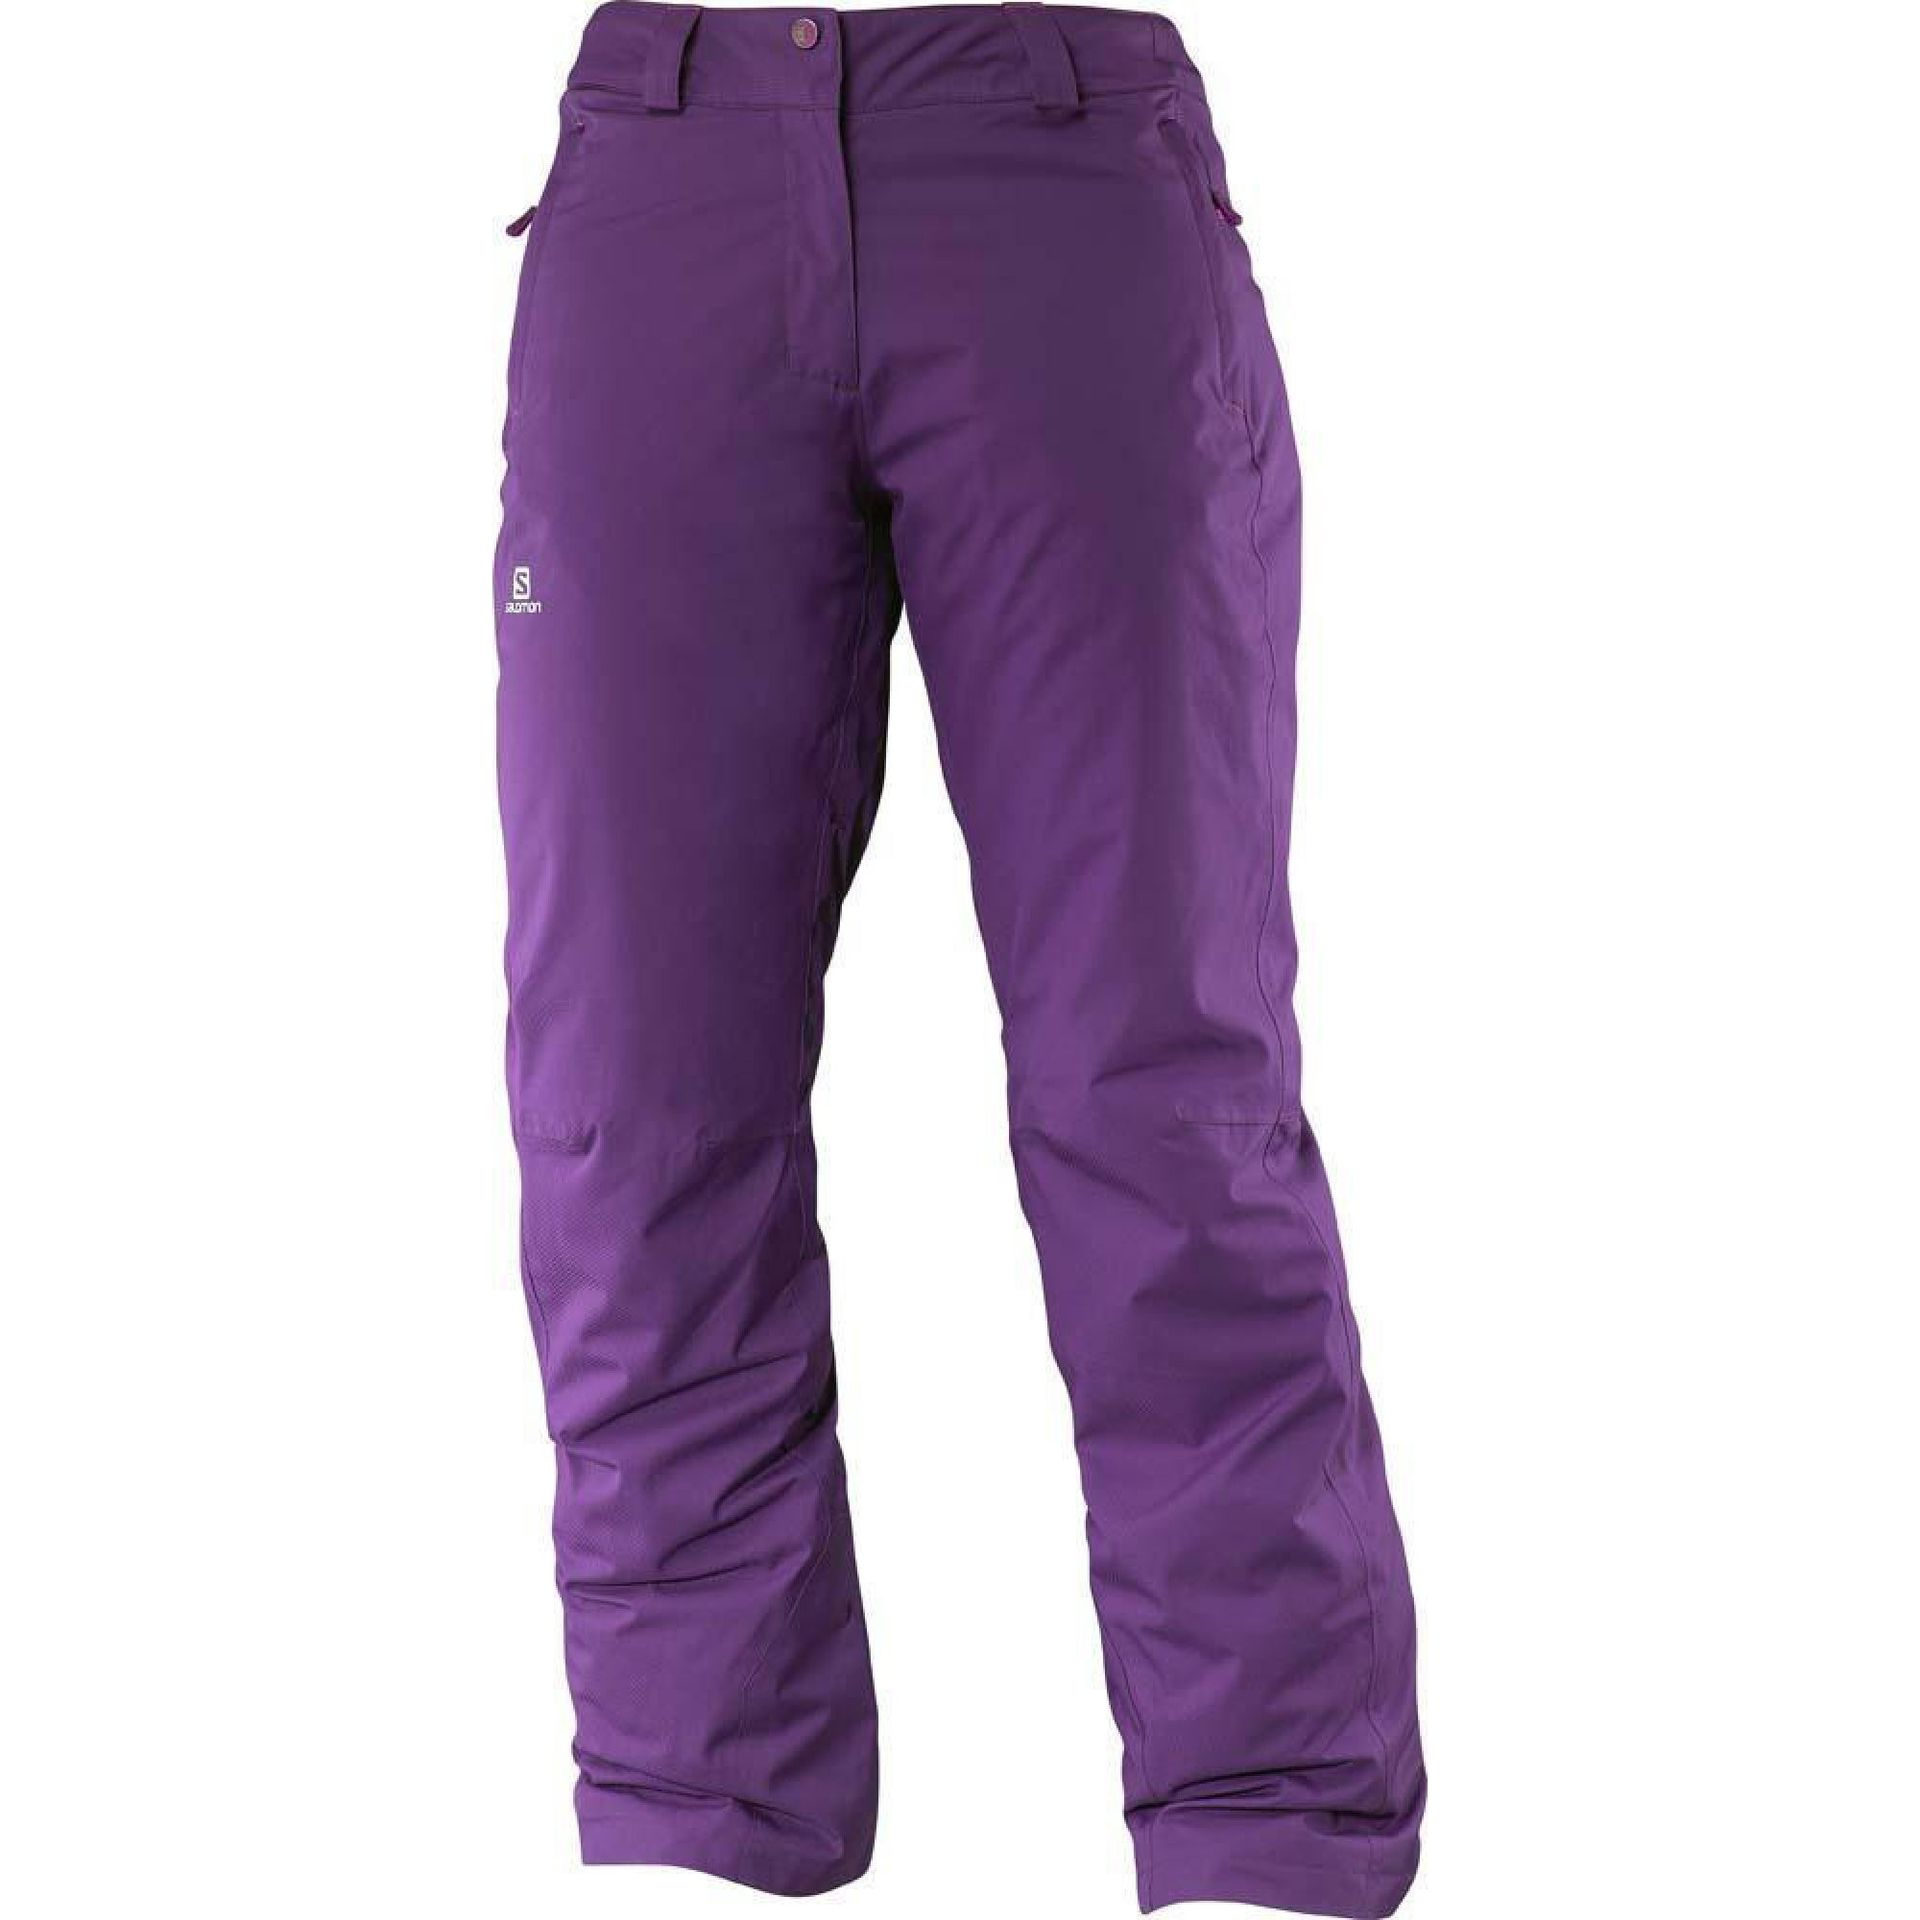 SPODNIE SALOMON IMPULSE PANT W COSMIC PURPLE